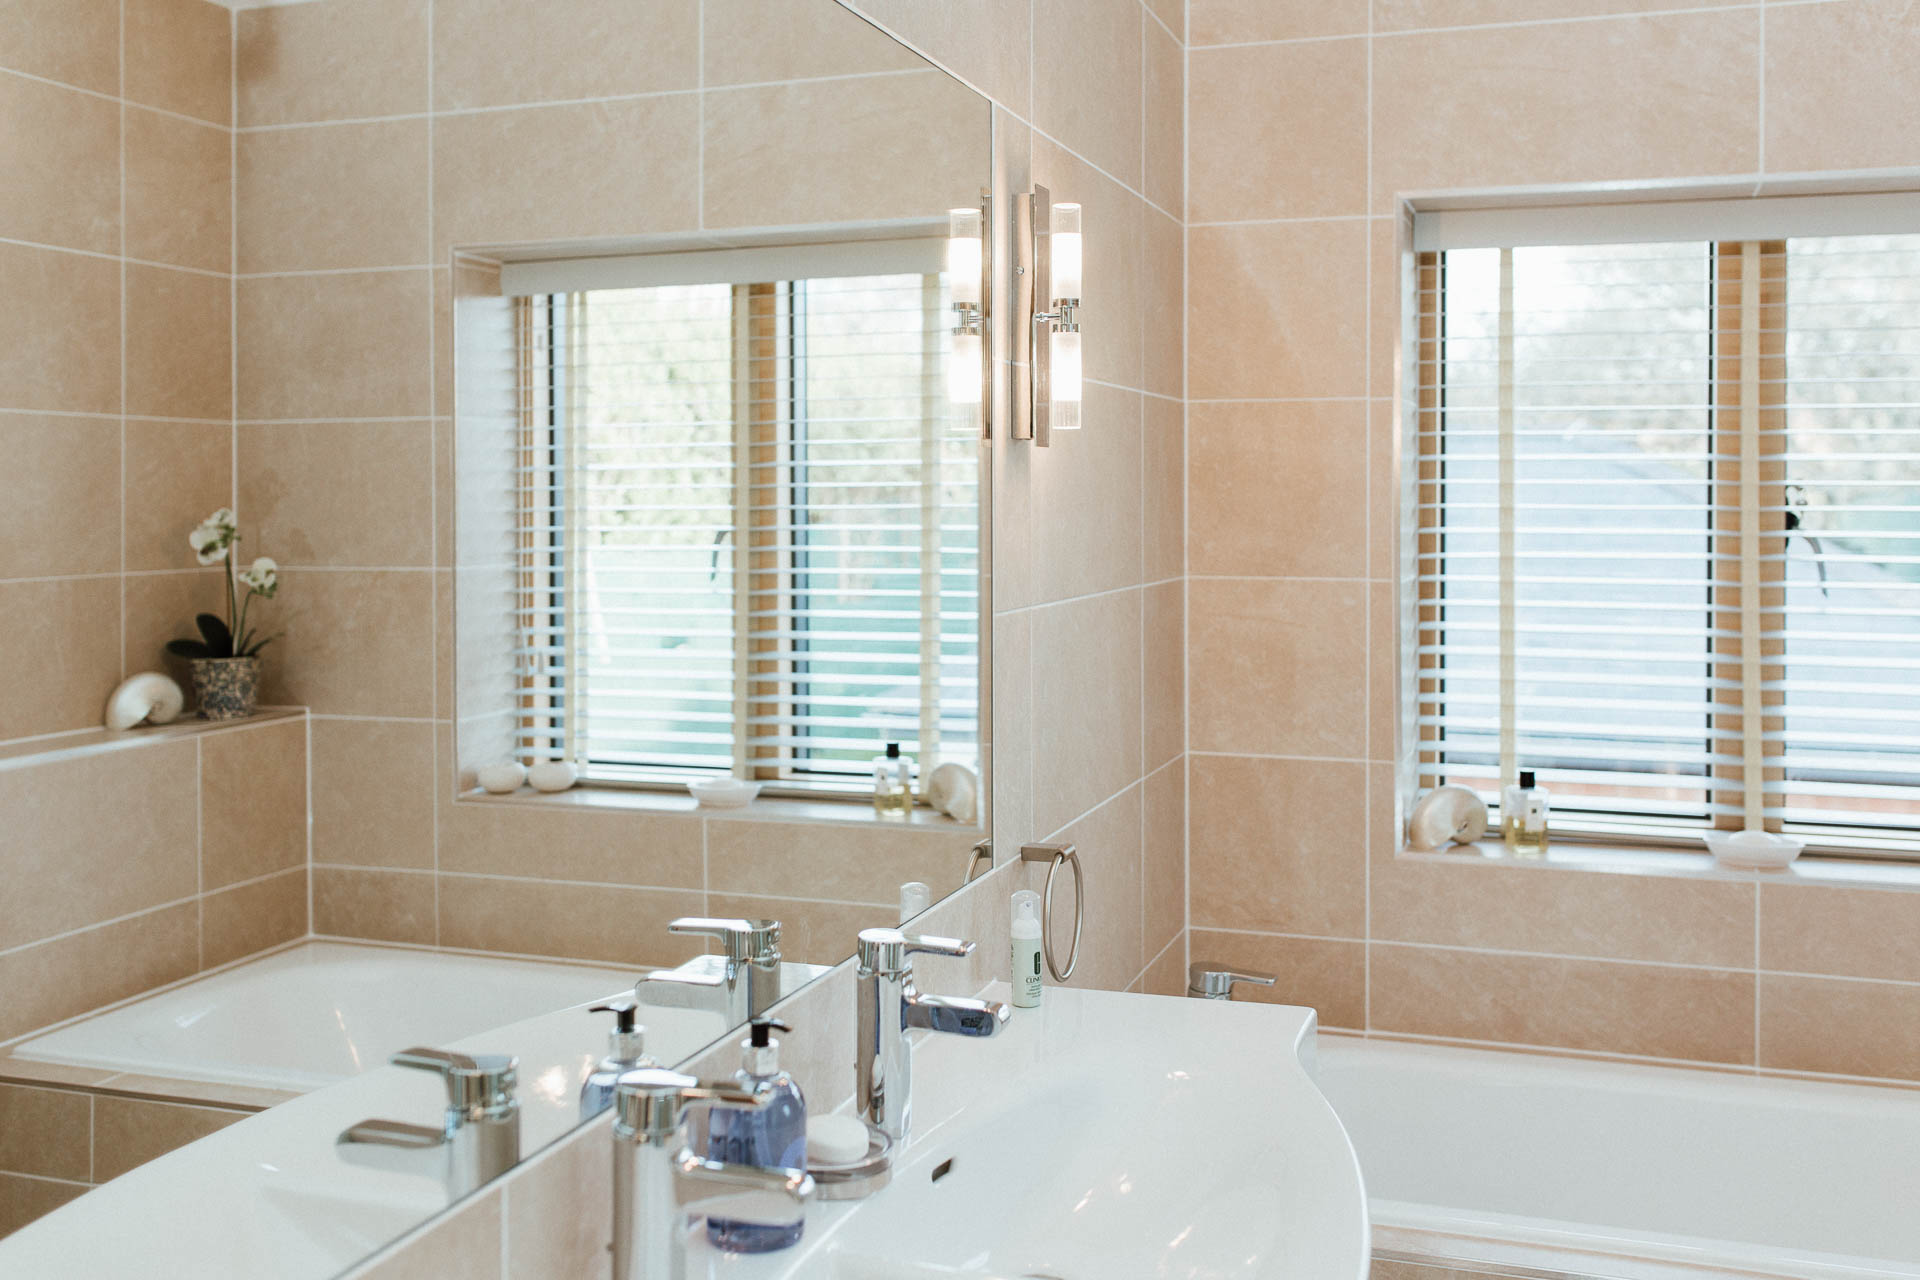 Tiled bathroom with recessed mirror